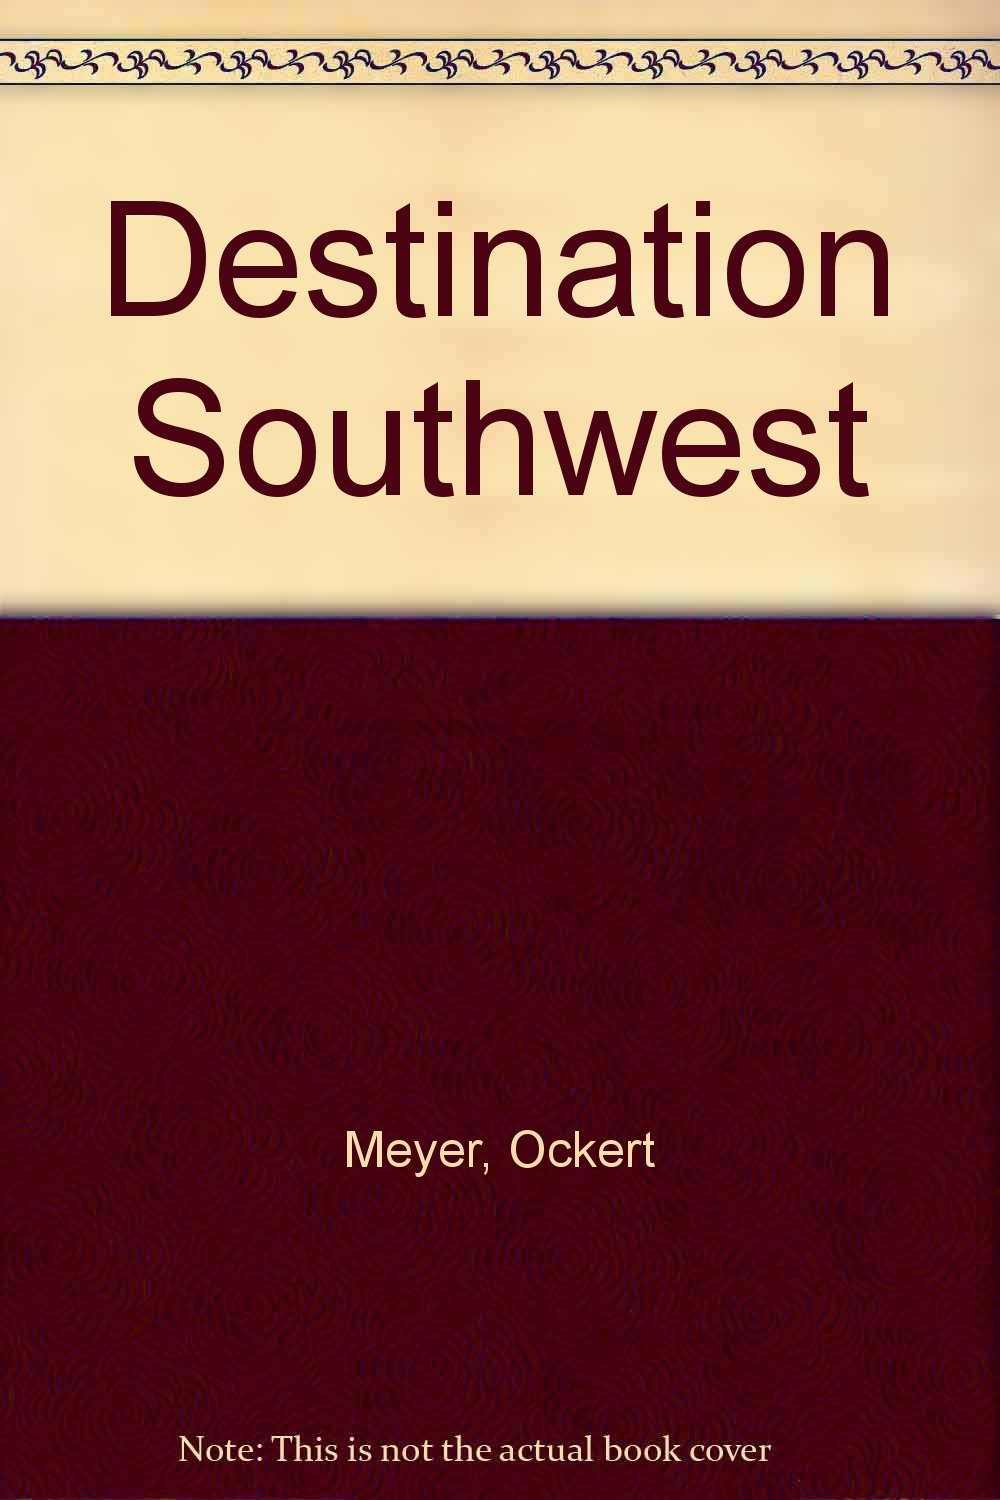 DESTINATION SOUTHWEST: A Guide to Retiring and Wintering in Arizona, New Mexico, and Nevada